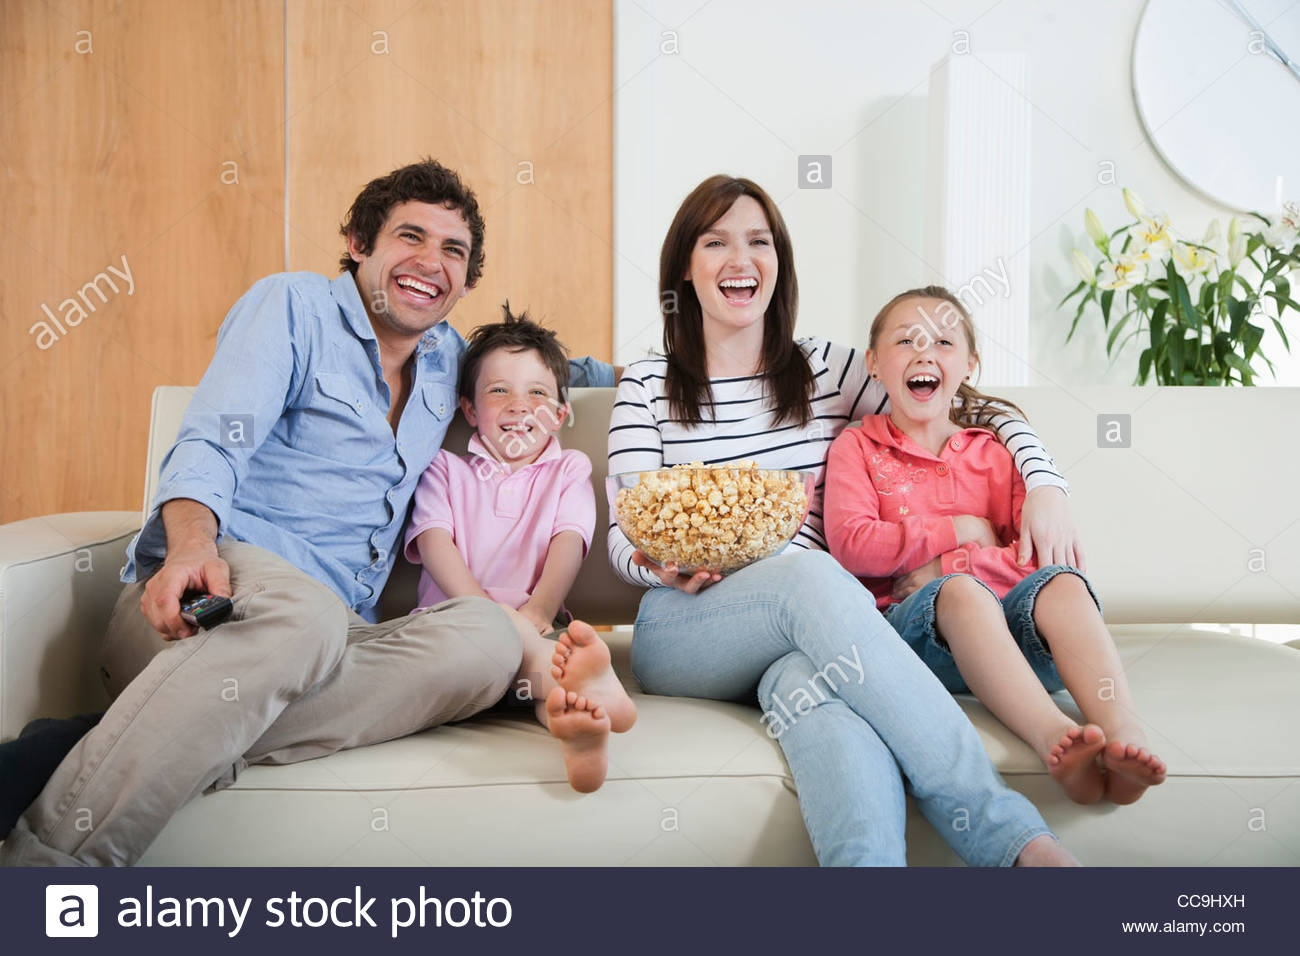 Laughing Family Watching Tv On Sofa Stock Photo Royalty Free Within Family Sofa (Image 11 of 15)